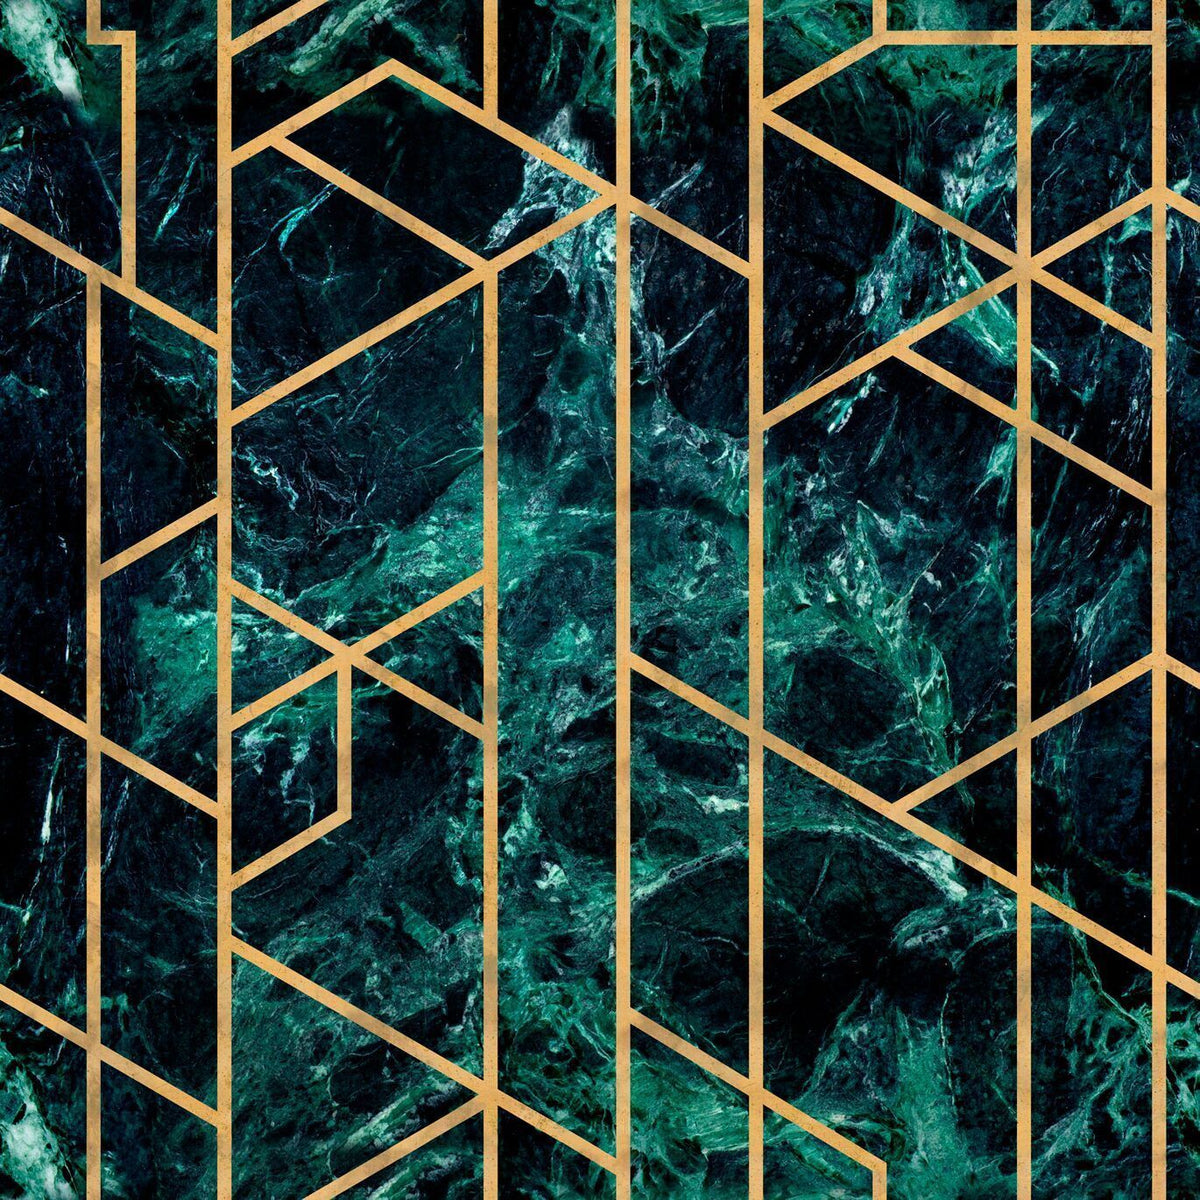 The Joyful Wallpaper Company WALLPAPER 1 Box of 1 Roll Gramercy Emerald Metallic Edition Wallpaper by Mind The Gap